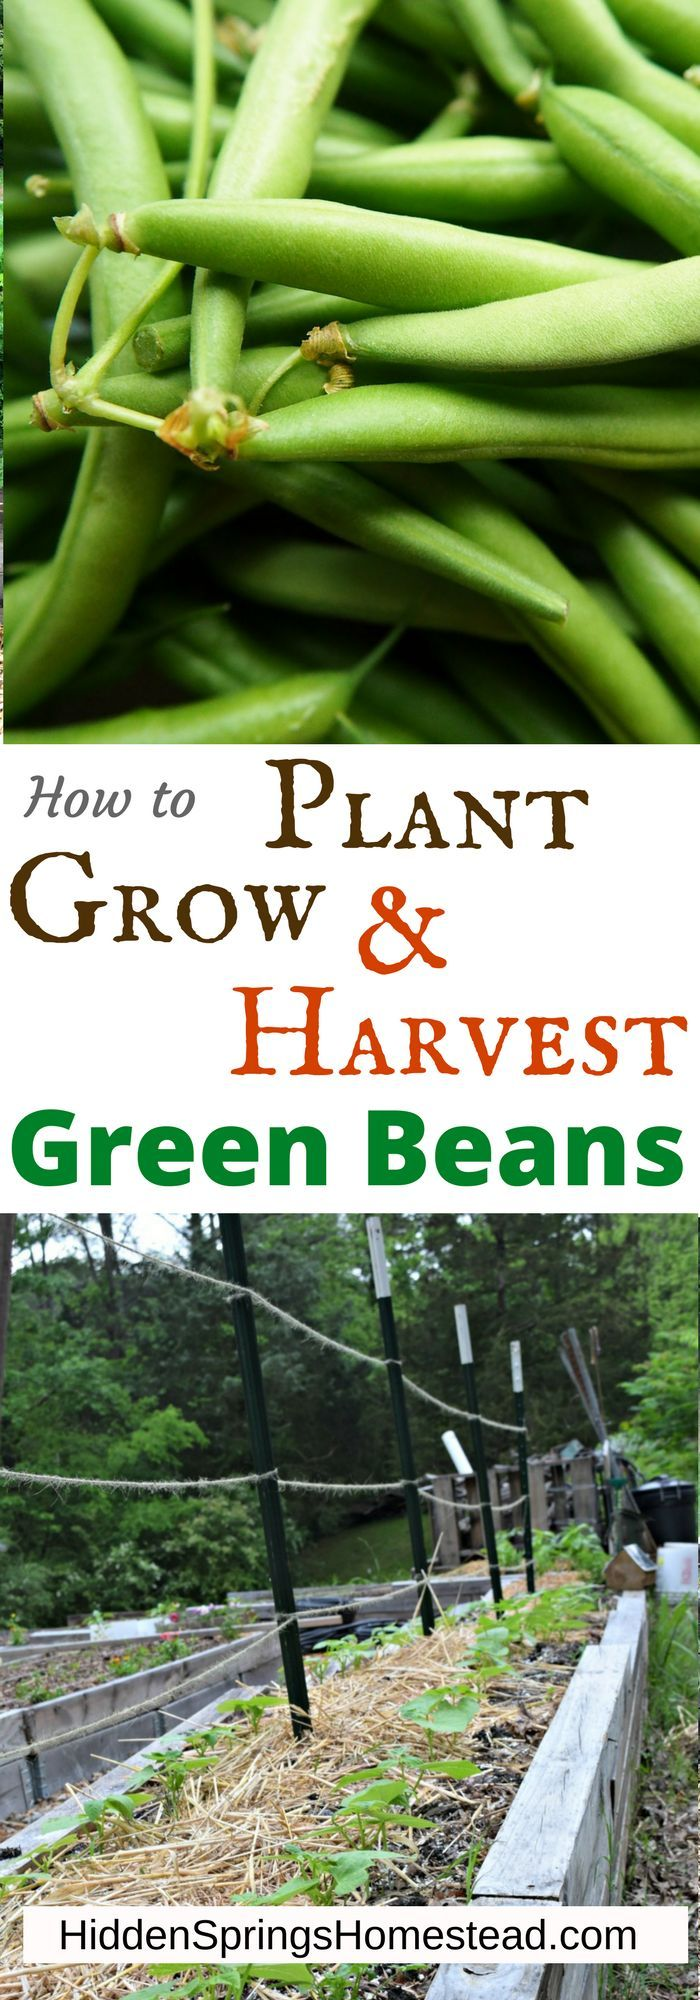 Do you love Green Beans. Learn how-to plant, grow, and harvest green beans of your very own. No more buying them from someone else!